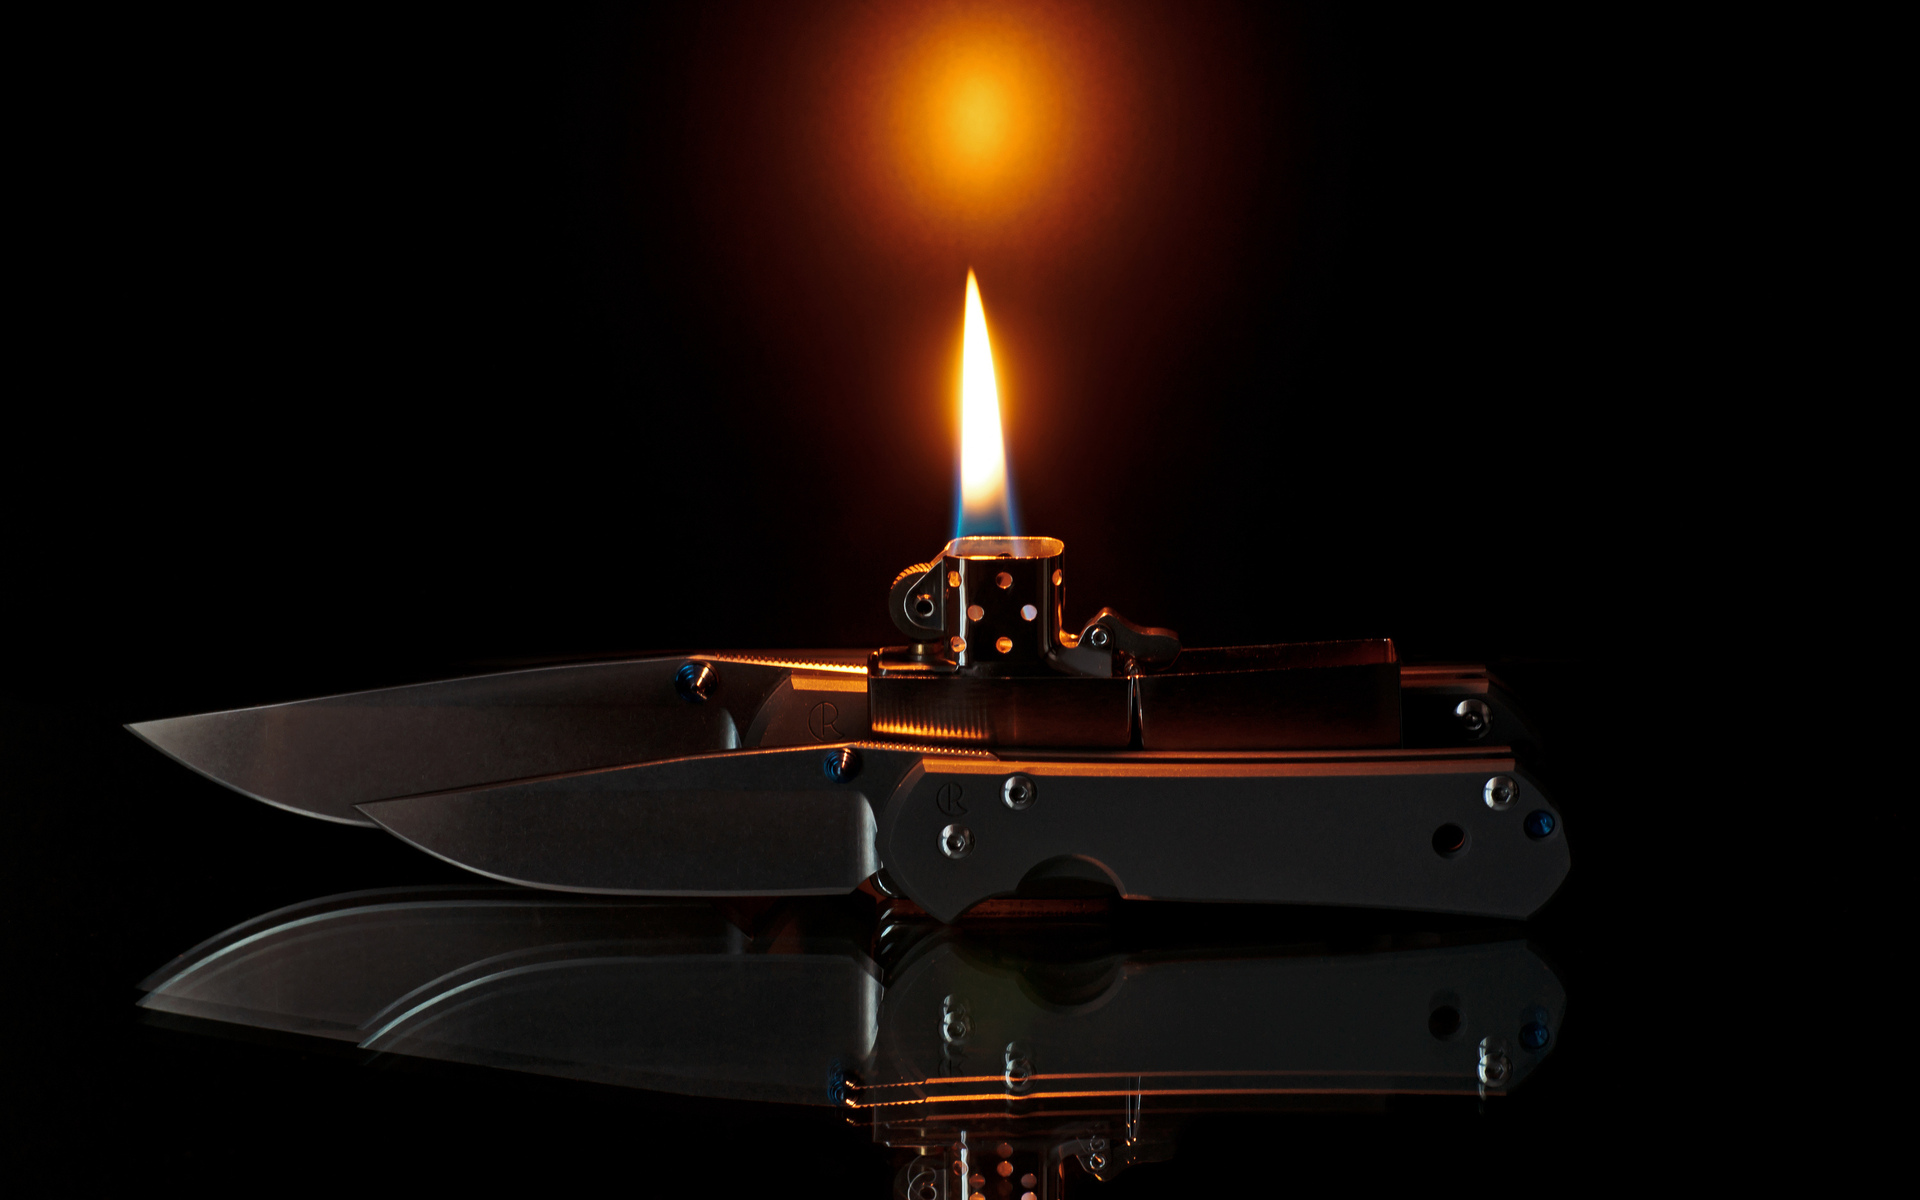 weapons knife lighter fire zippo